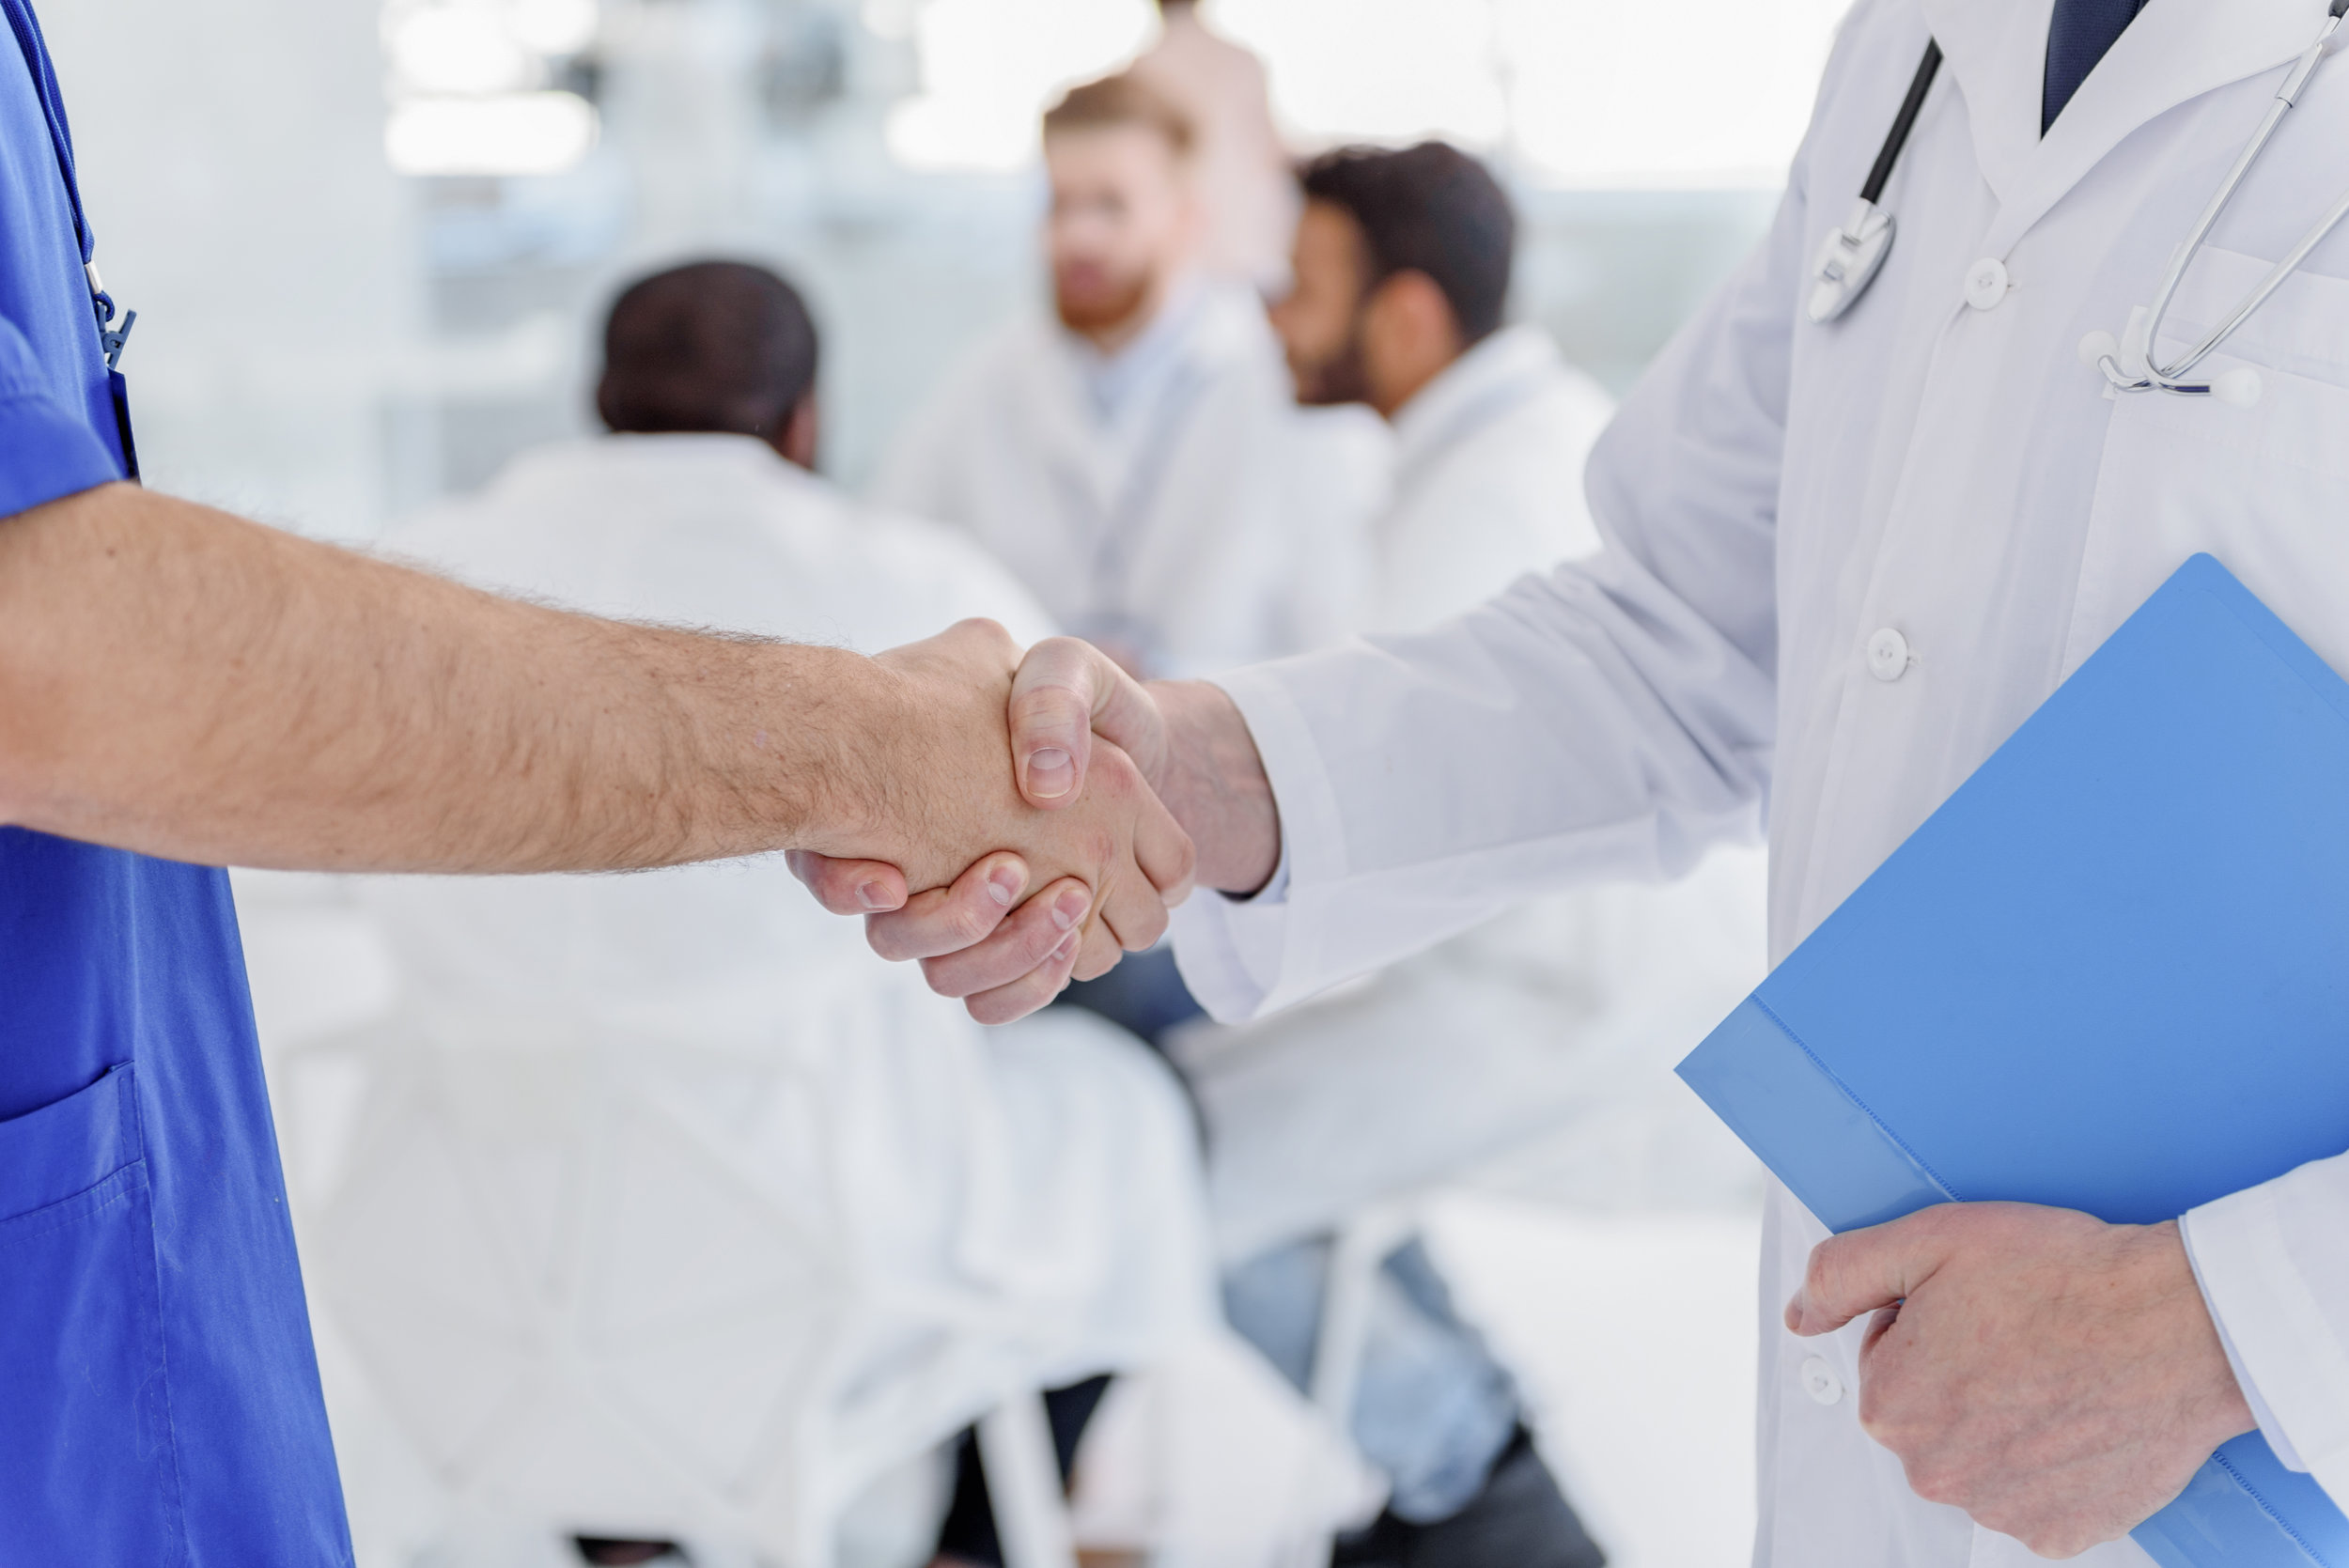 home - join -- stock-photo-medical-workers-greeting-each-other-by-handshake-568817293.jpg